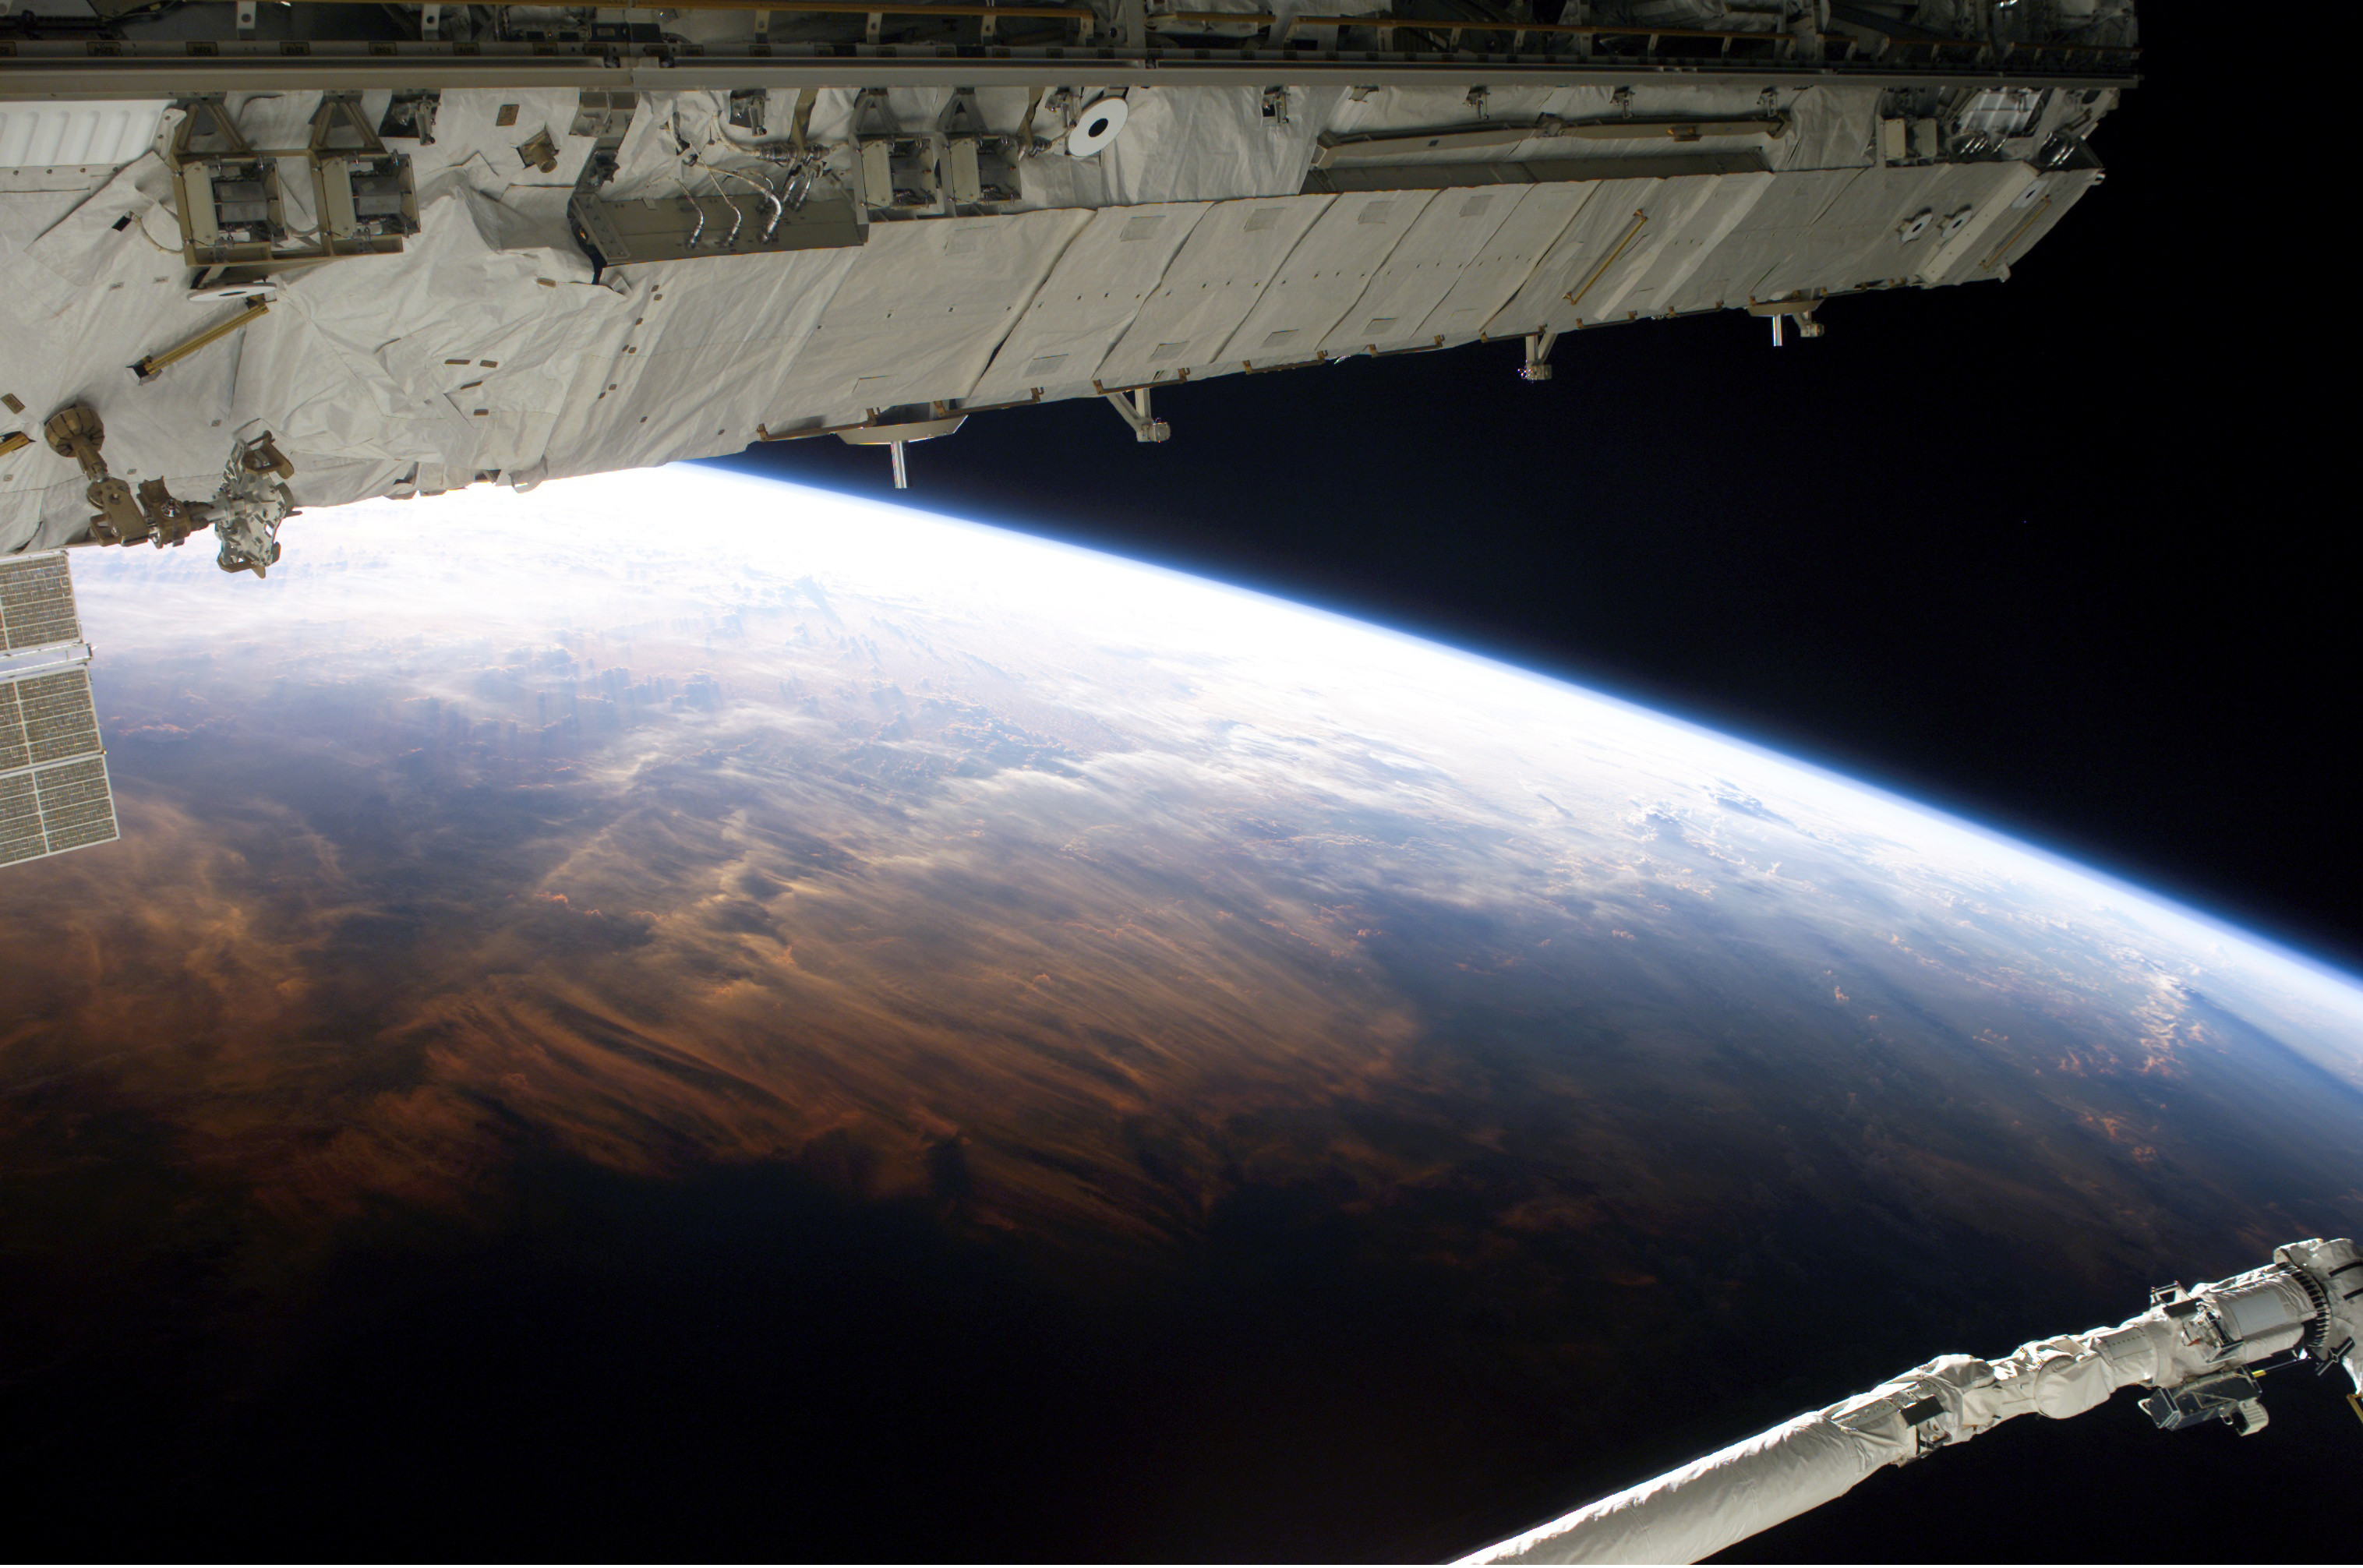 The STS-114 crew captured this view of Earth from the Shuttle-Station complex on day nine of the mission.